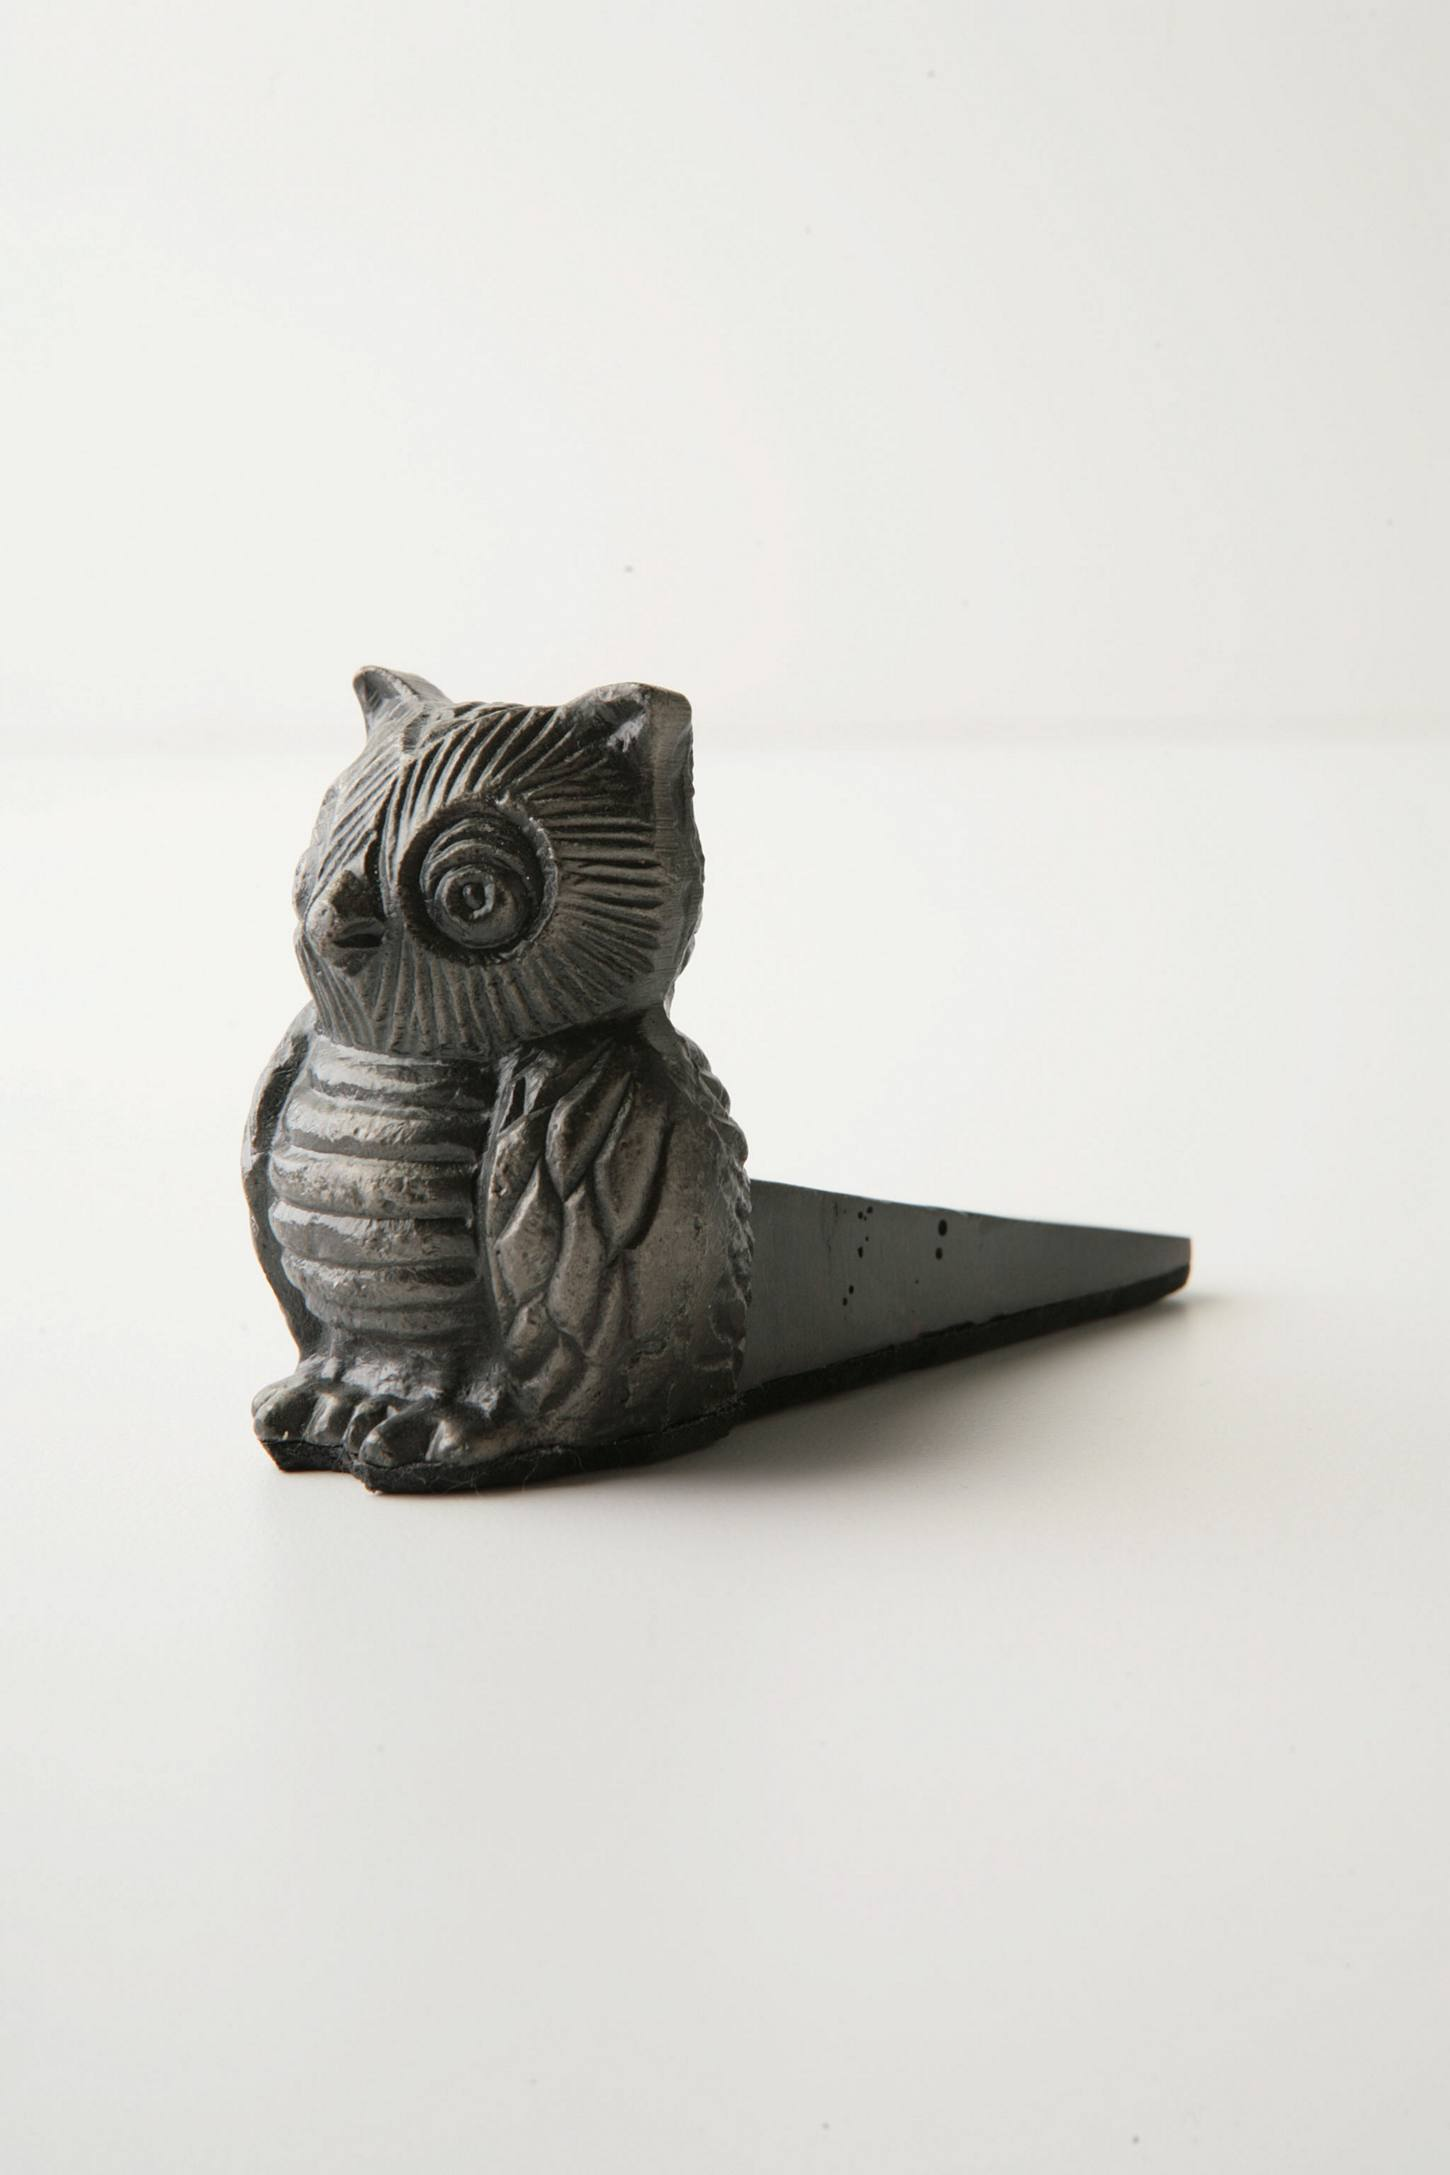 Slide View: 1: Owl Doorstop